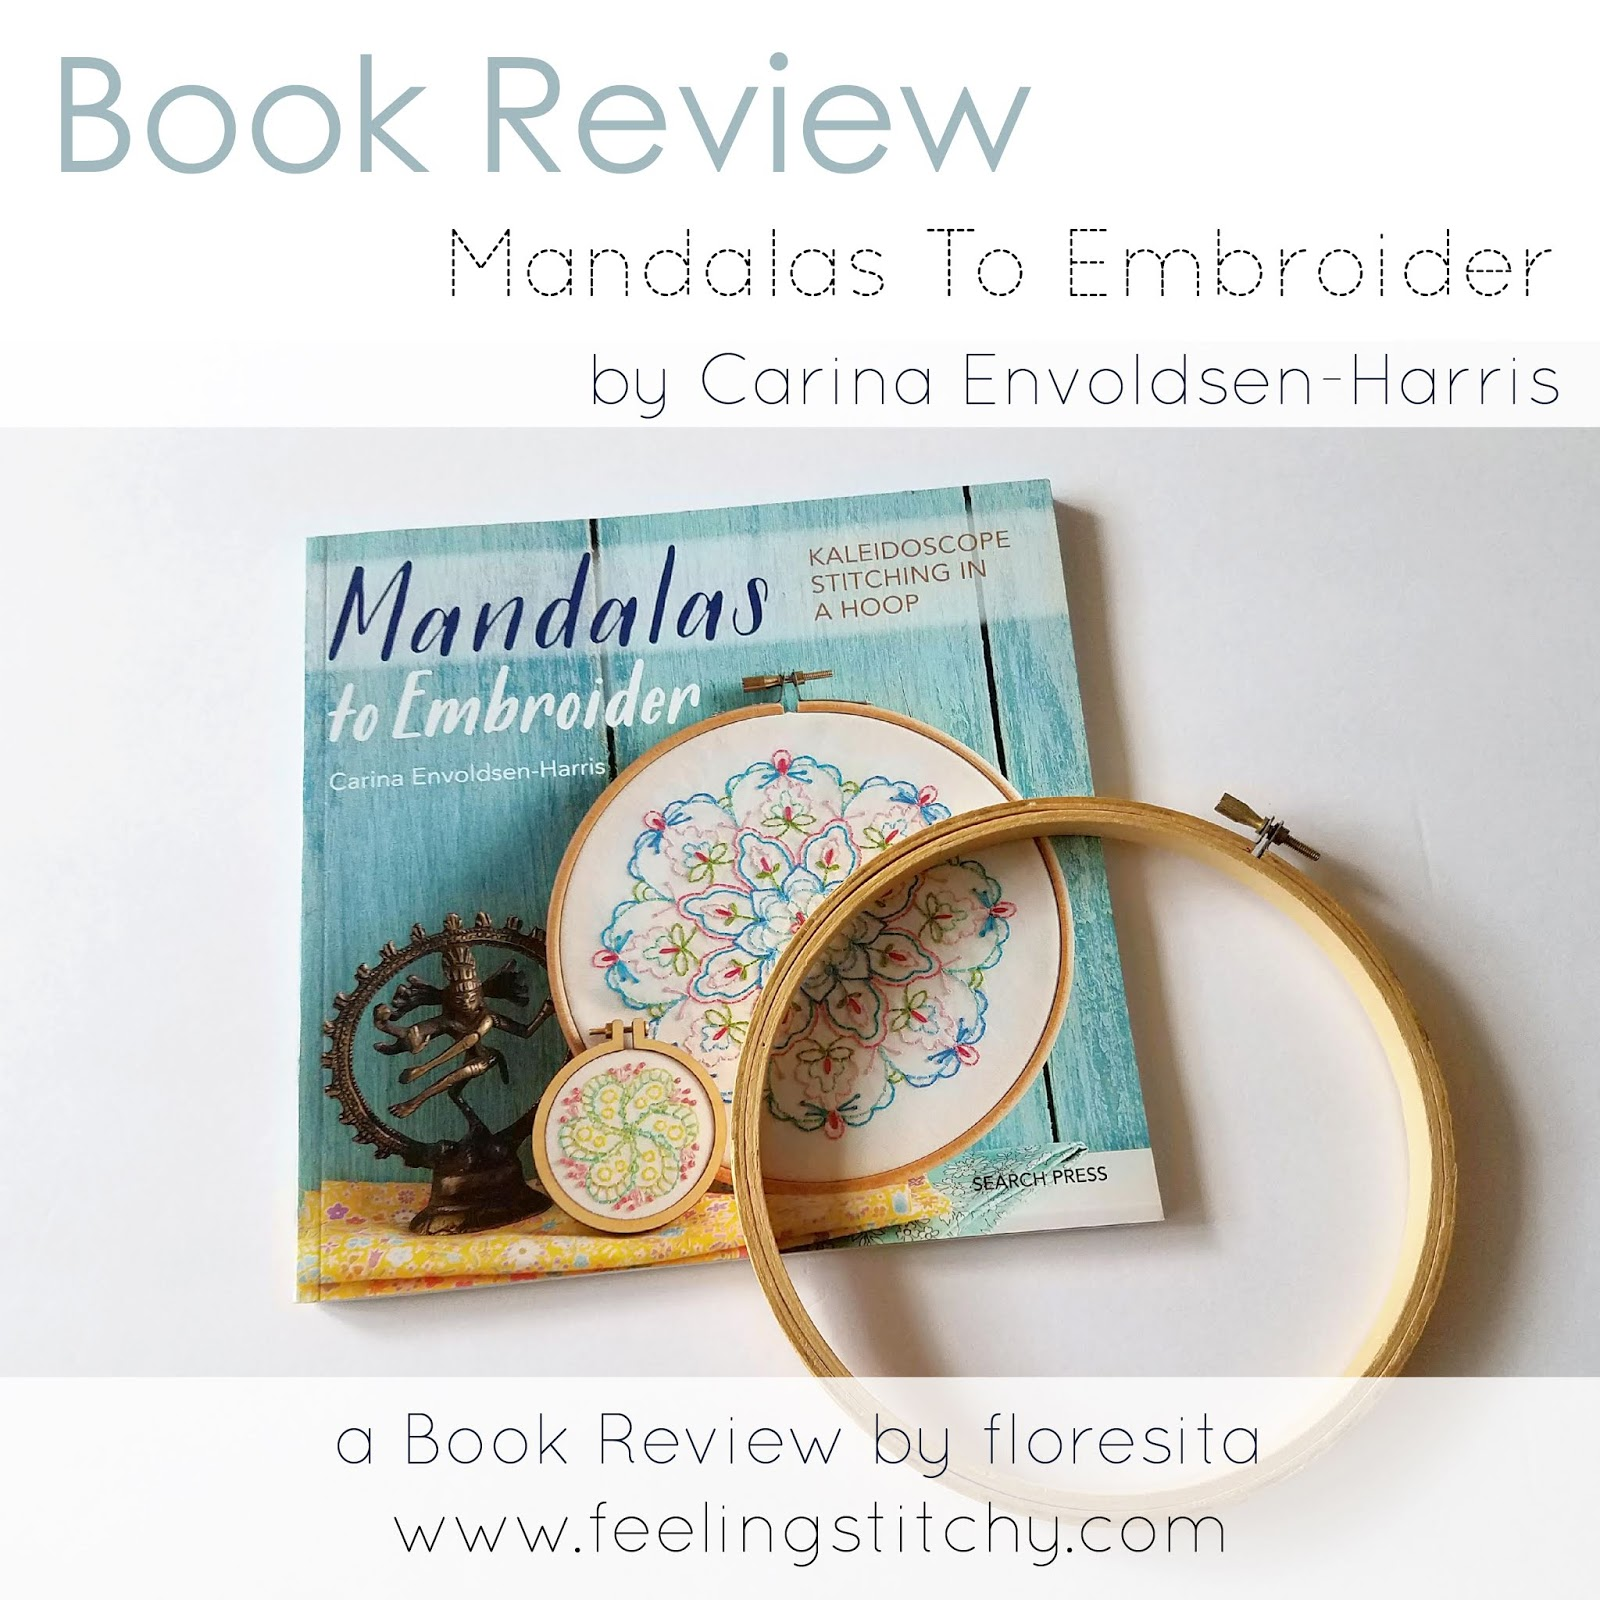 feeling stitchy book review mandalas to embroider